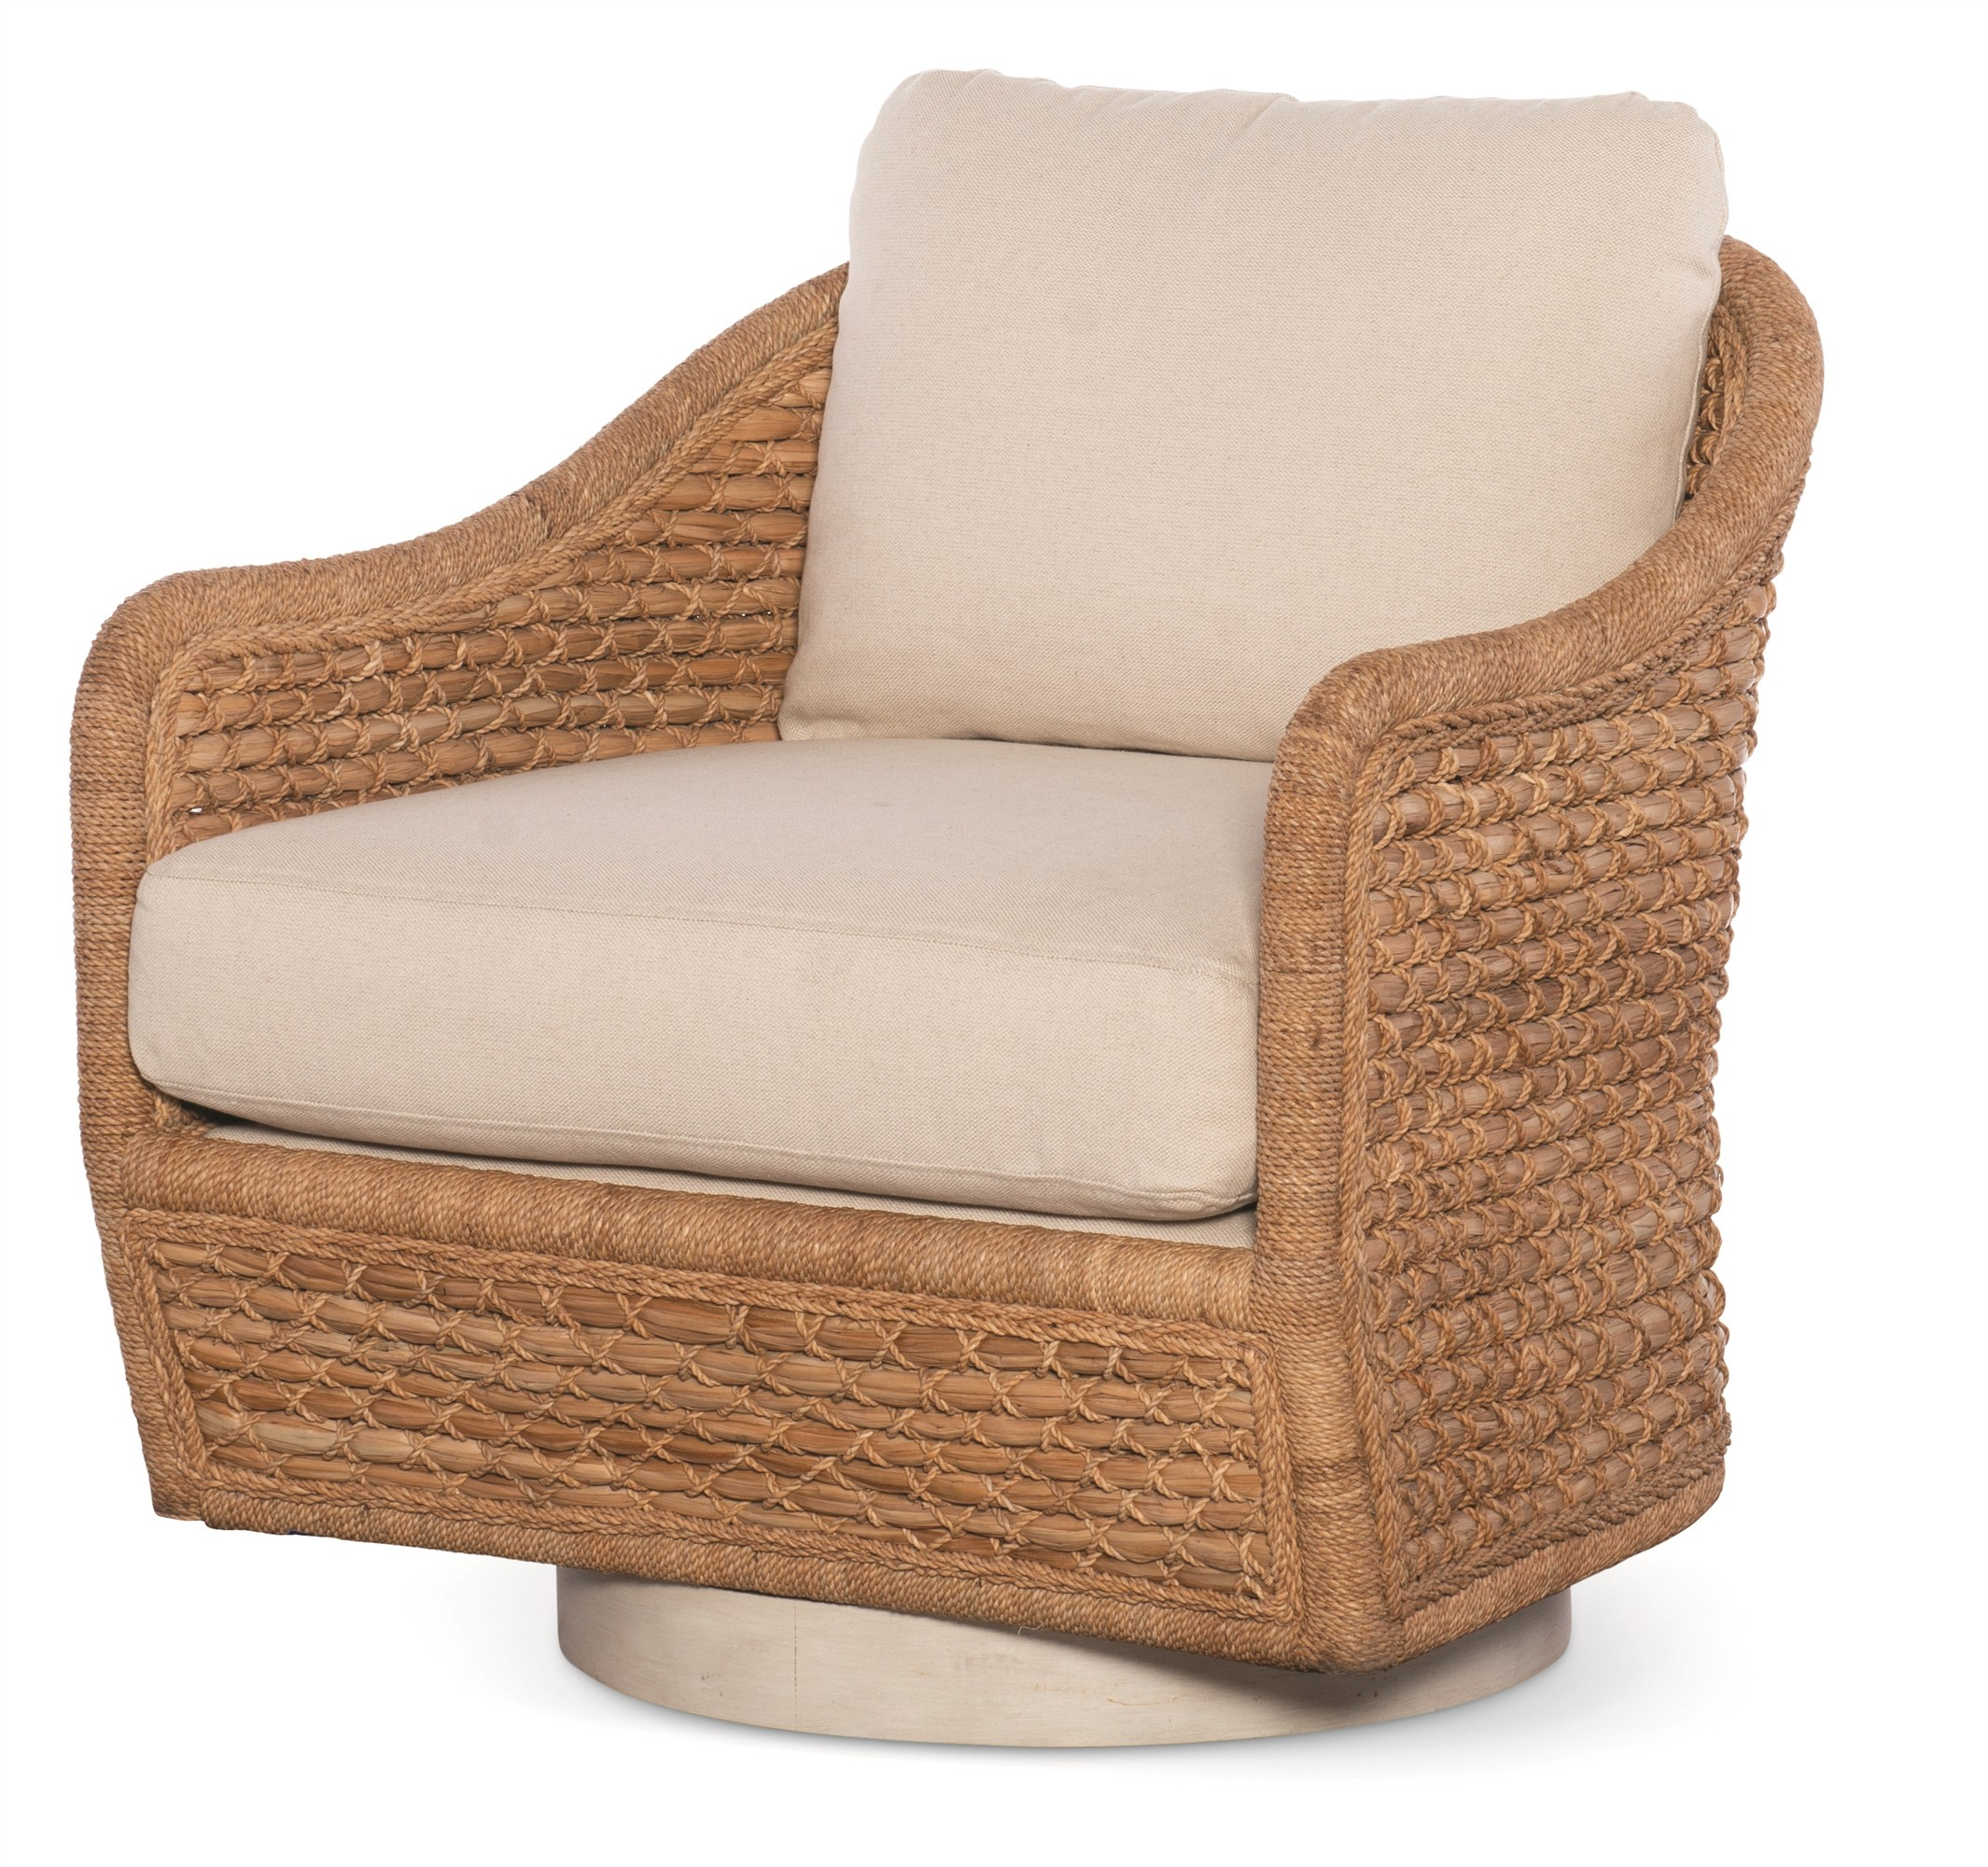 Pompano Swivel Lounge Chair - Natural/Flax